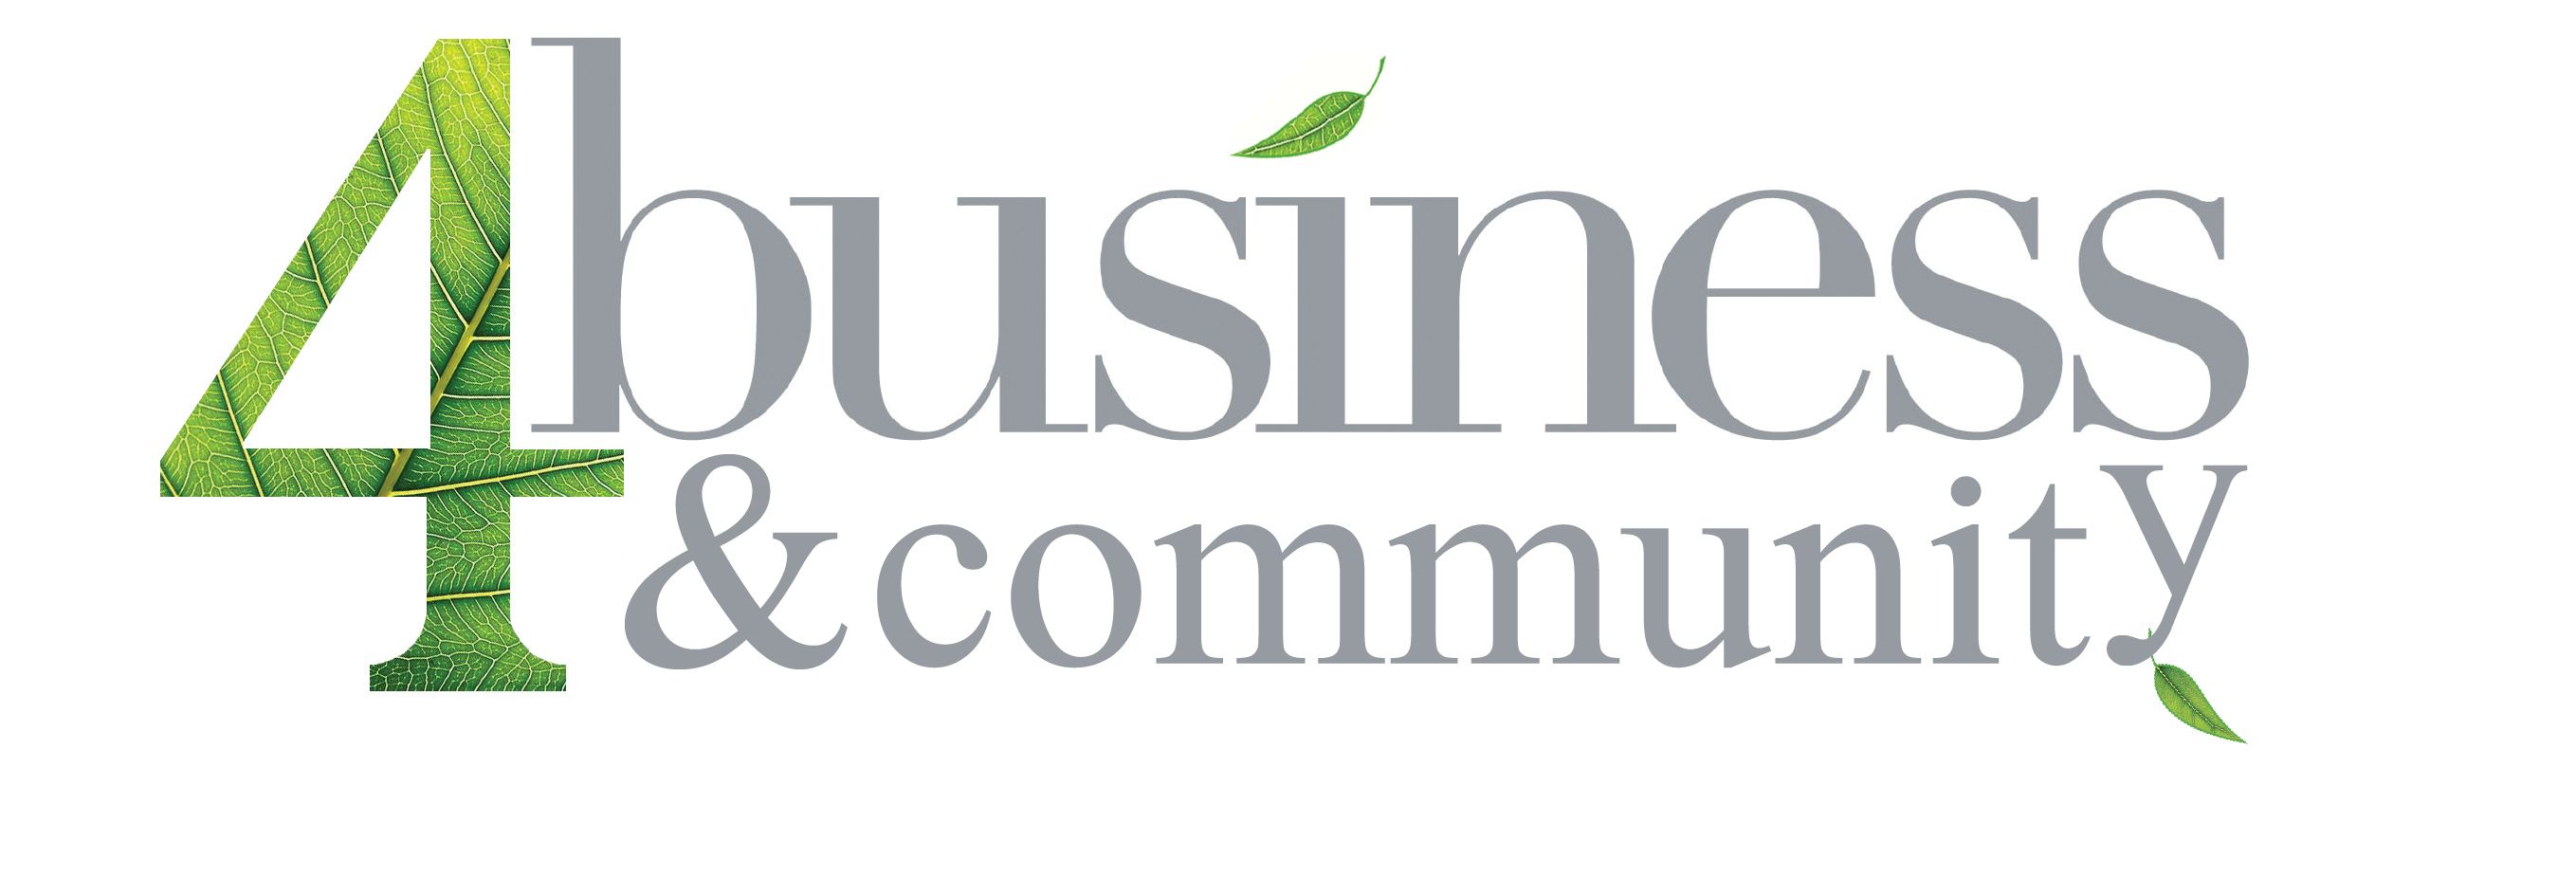 4 Business & Community